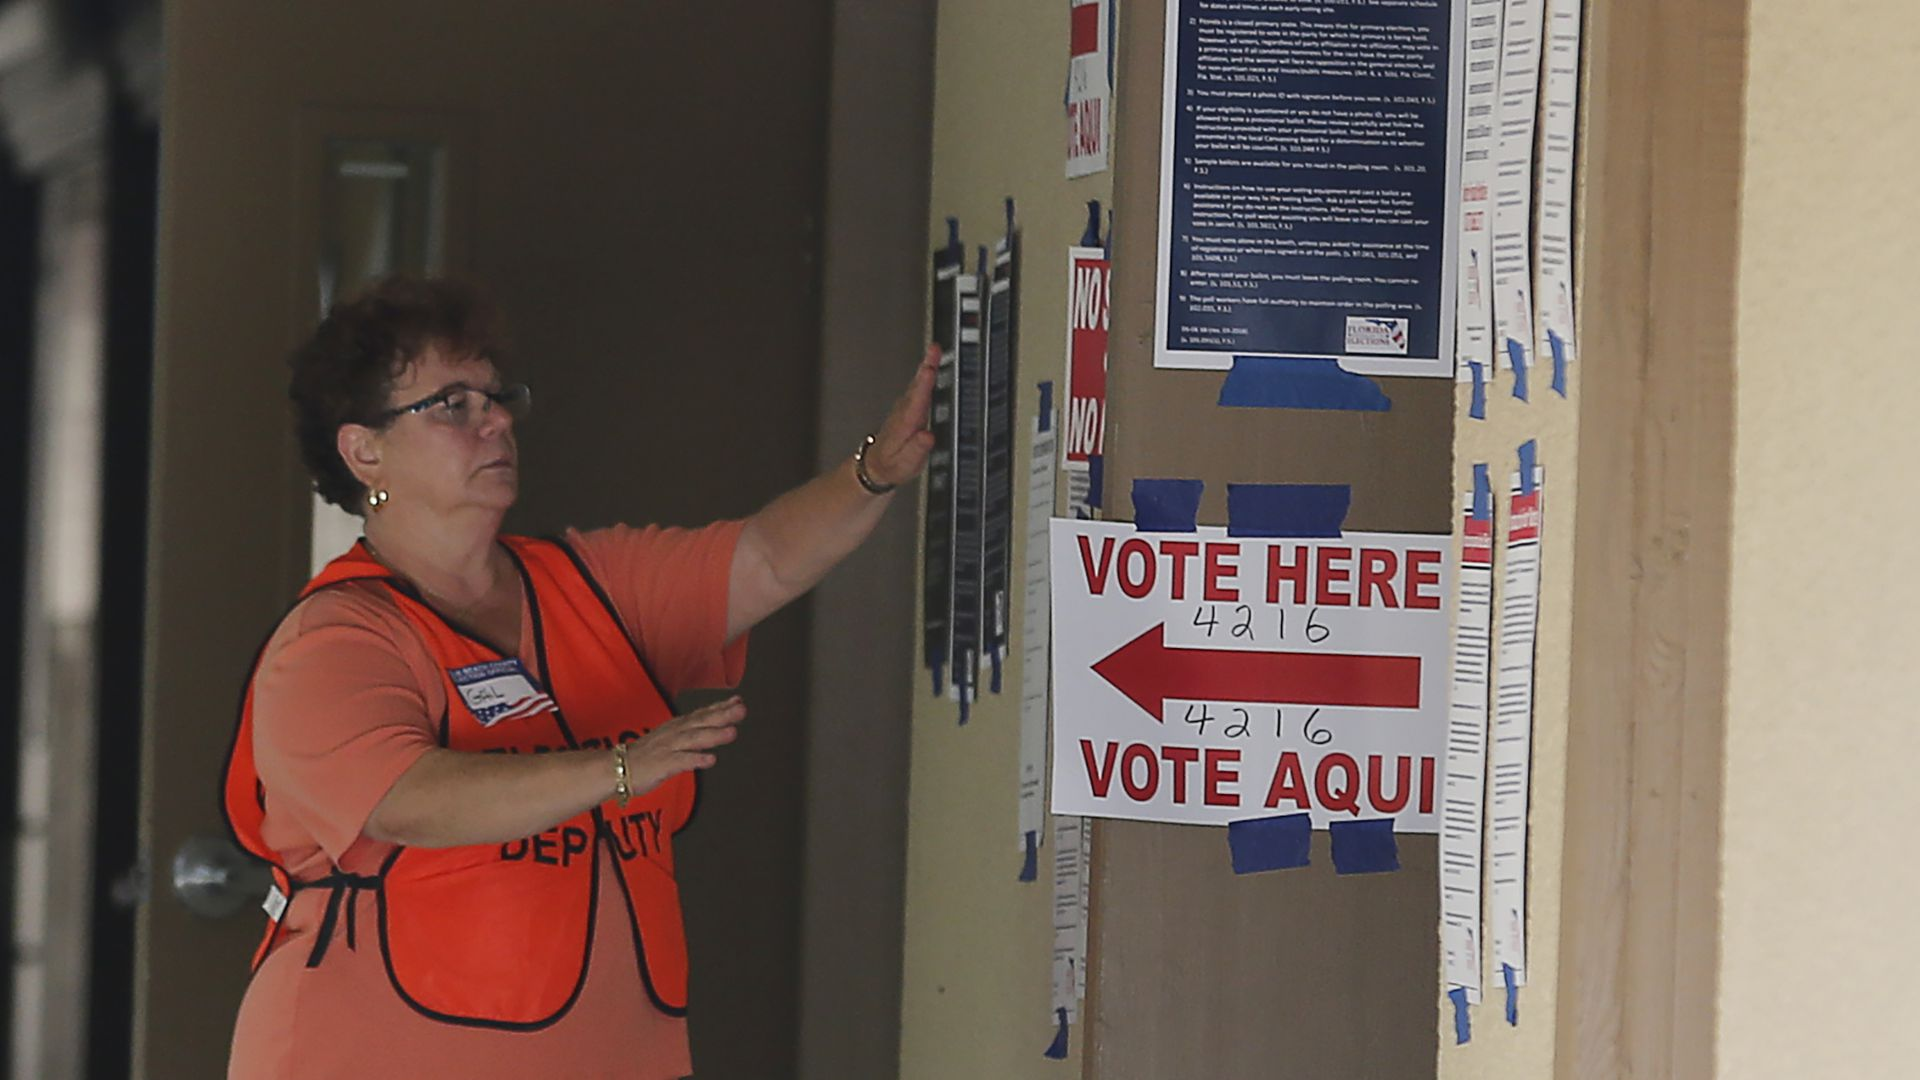 A polling place in Florida